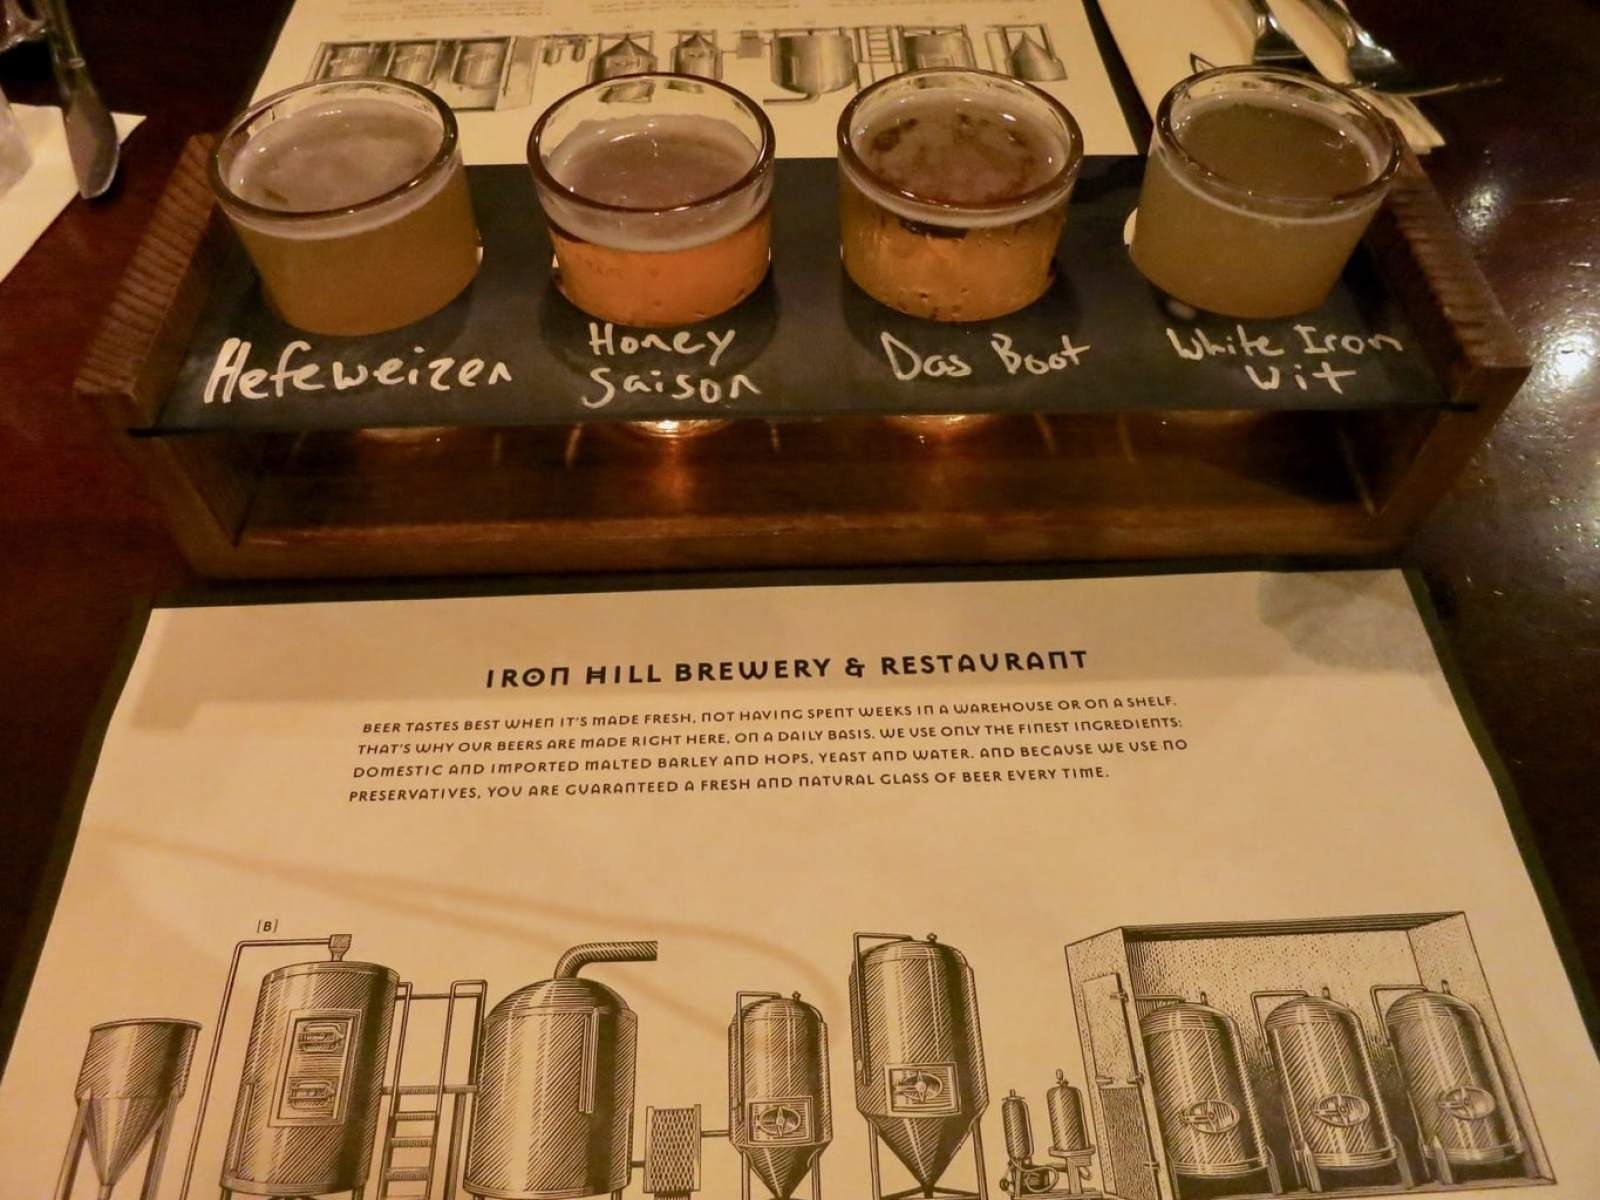 Iron Hill Brewery and Restaurant West Chester PA